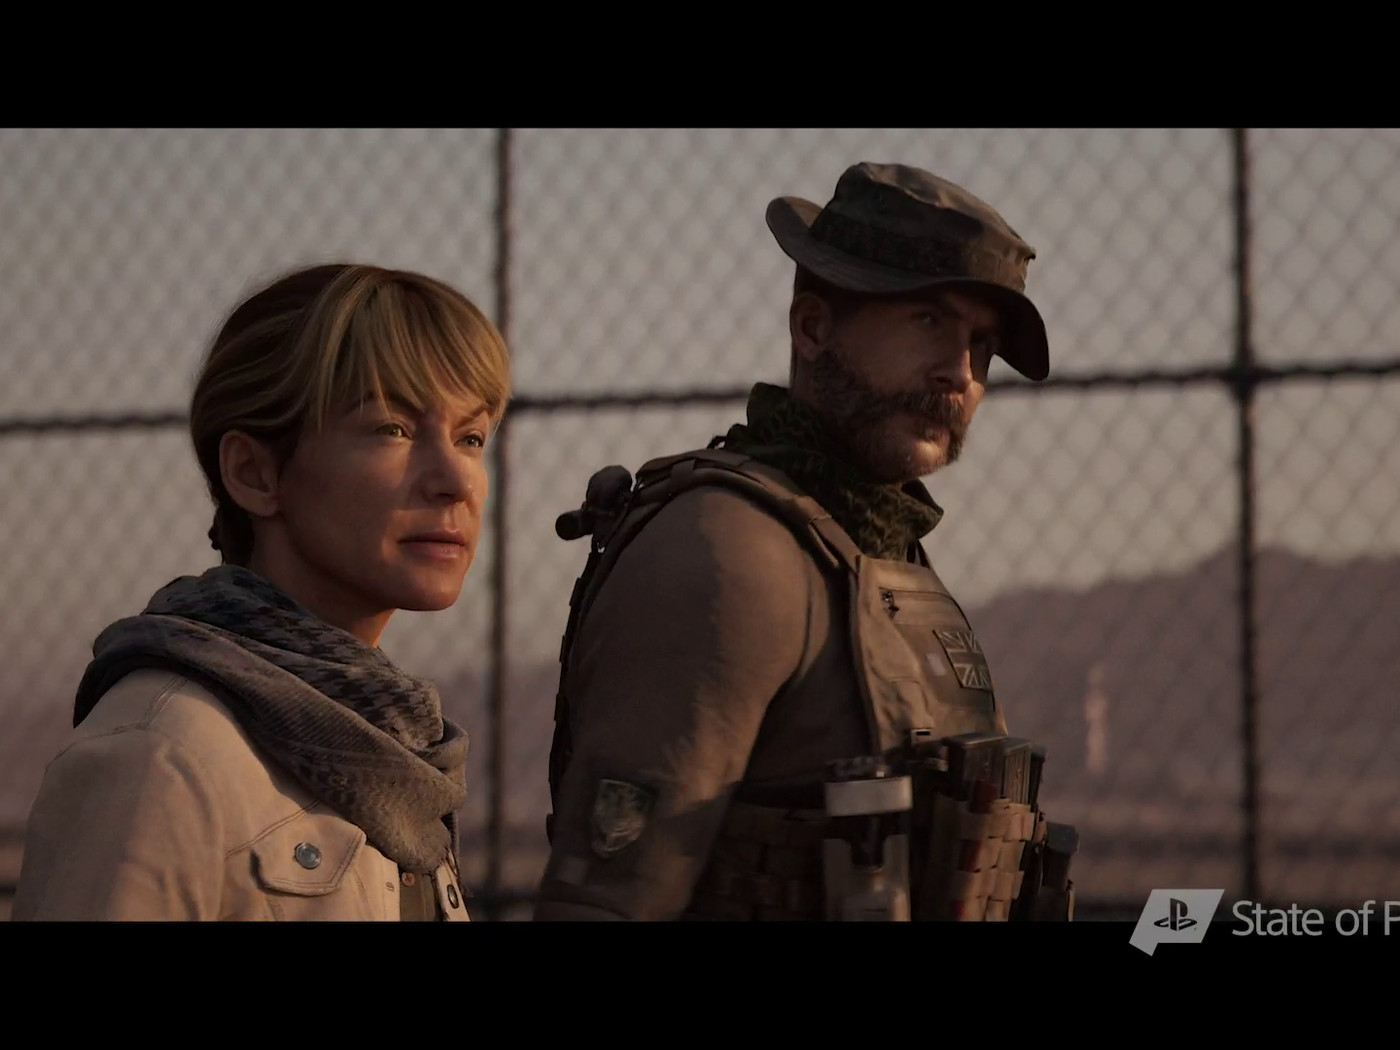 Call Of Duty Modern Warfare Campaign Trailer Is Morally